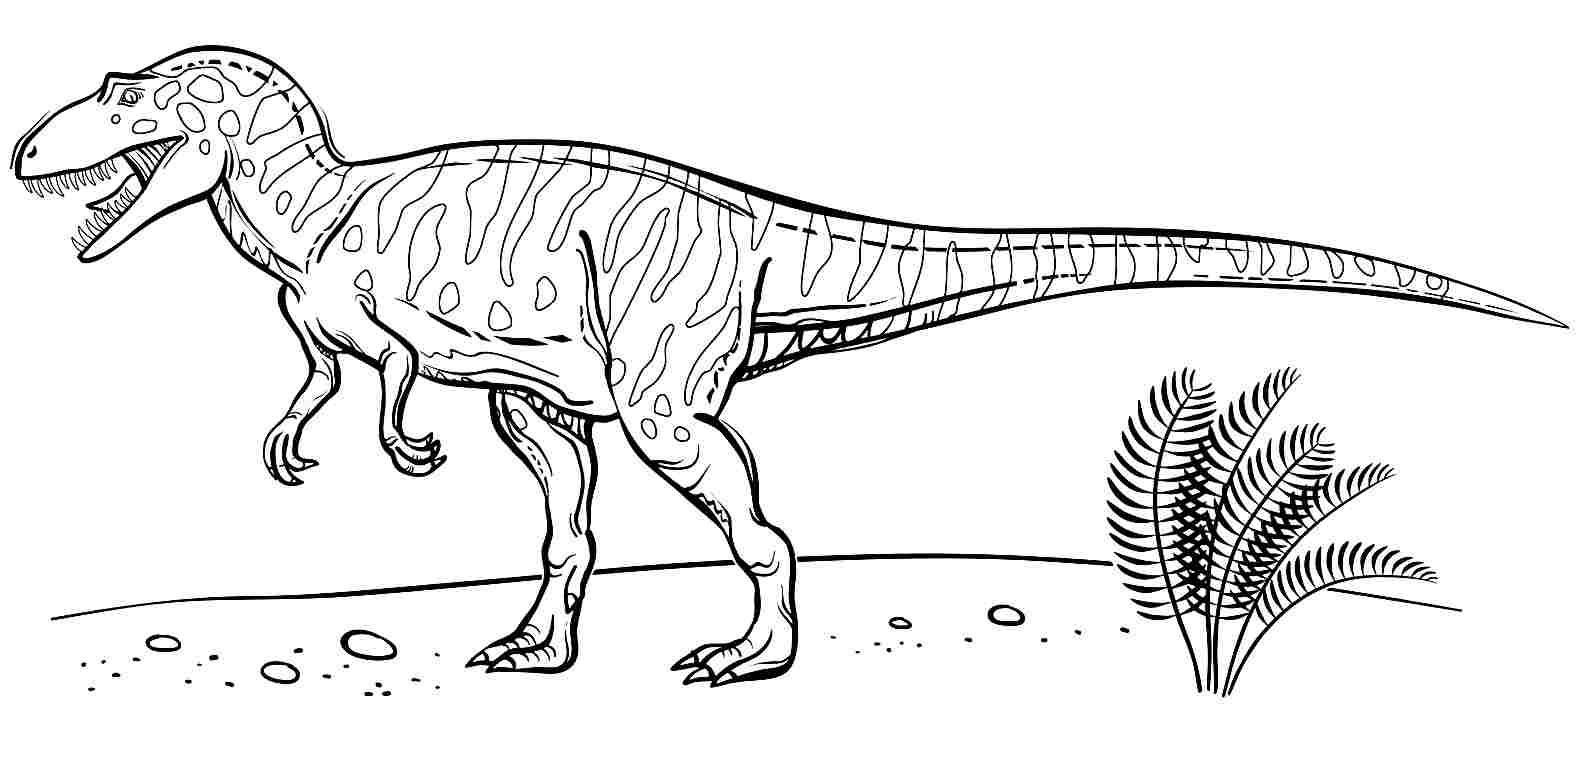 49+ Dinosaur coloring pages velociraptor inspirations